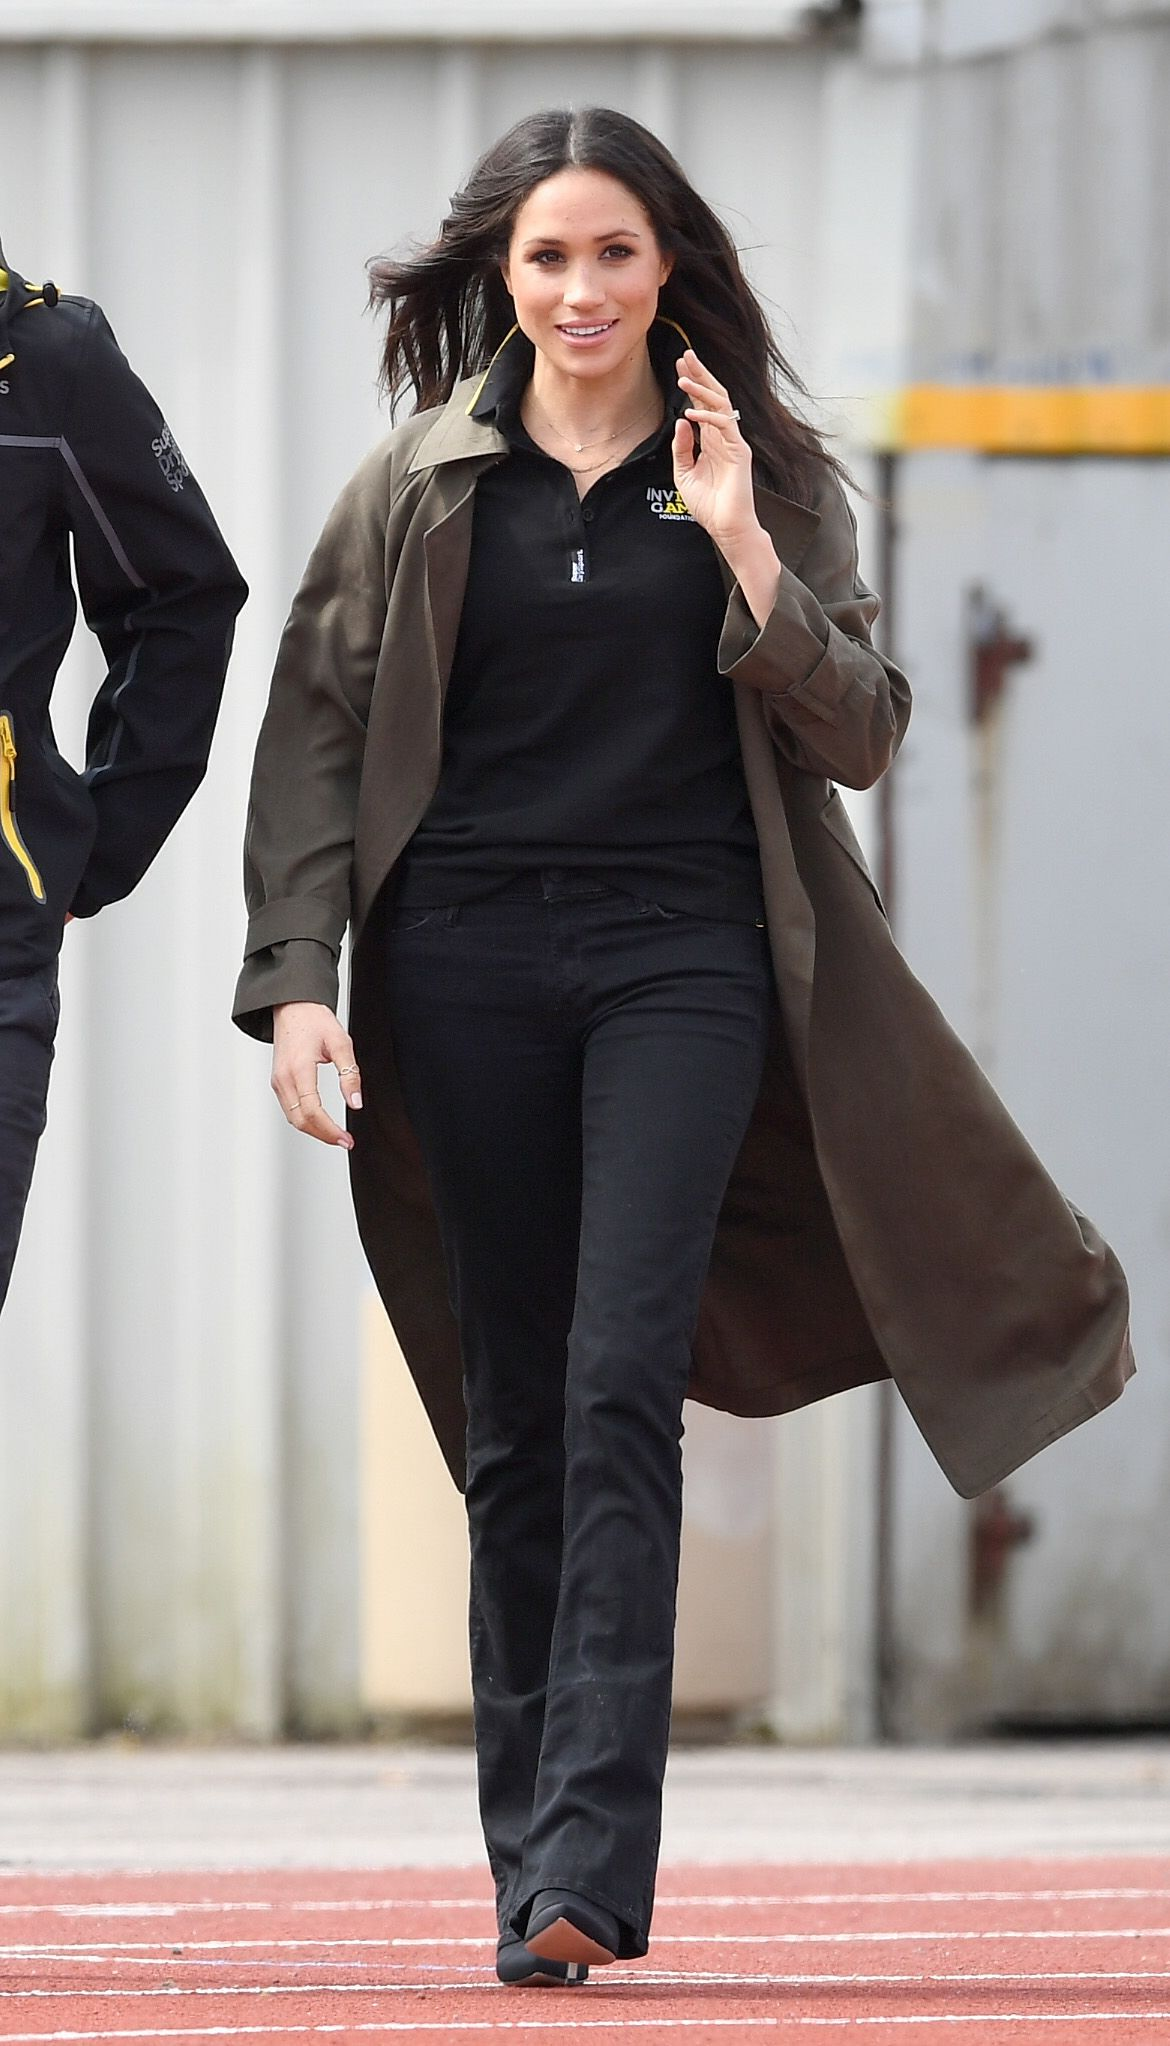 ba741dca9d Meghan Markle just made bootcut jeans cool again